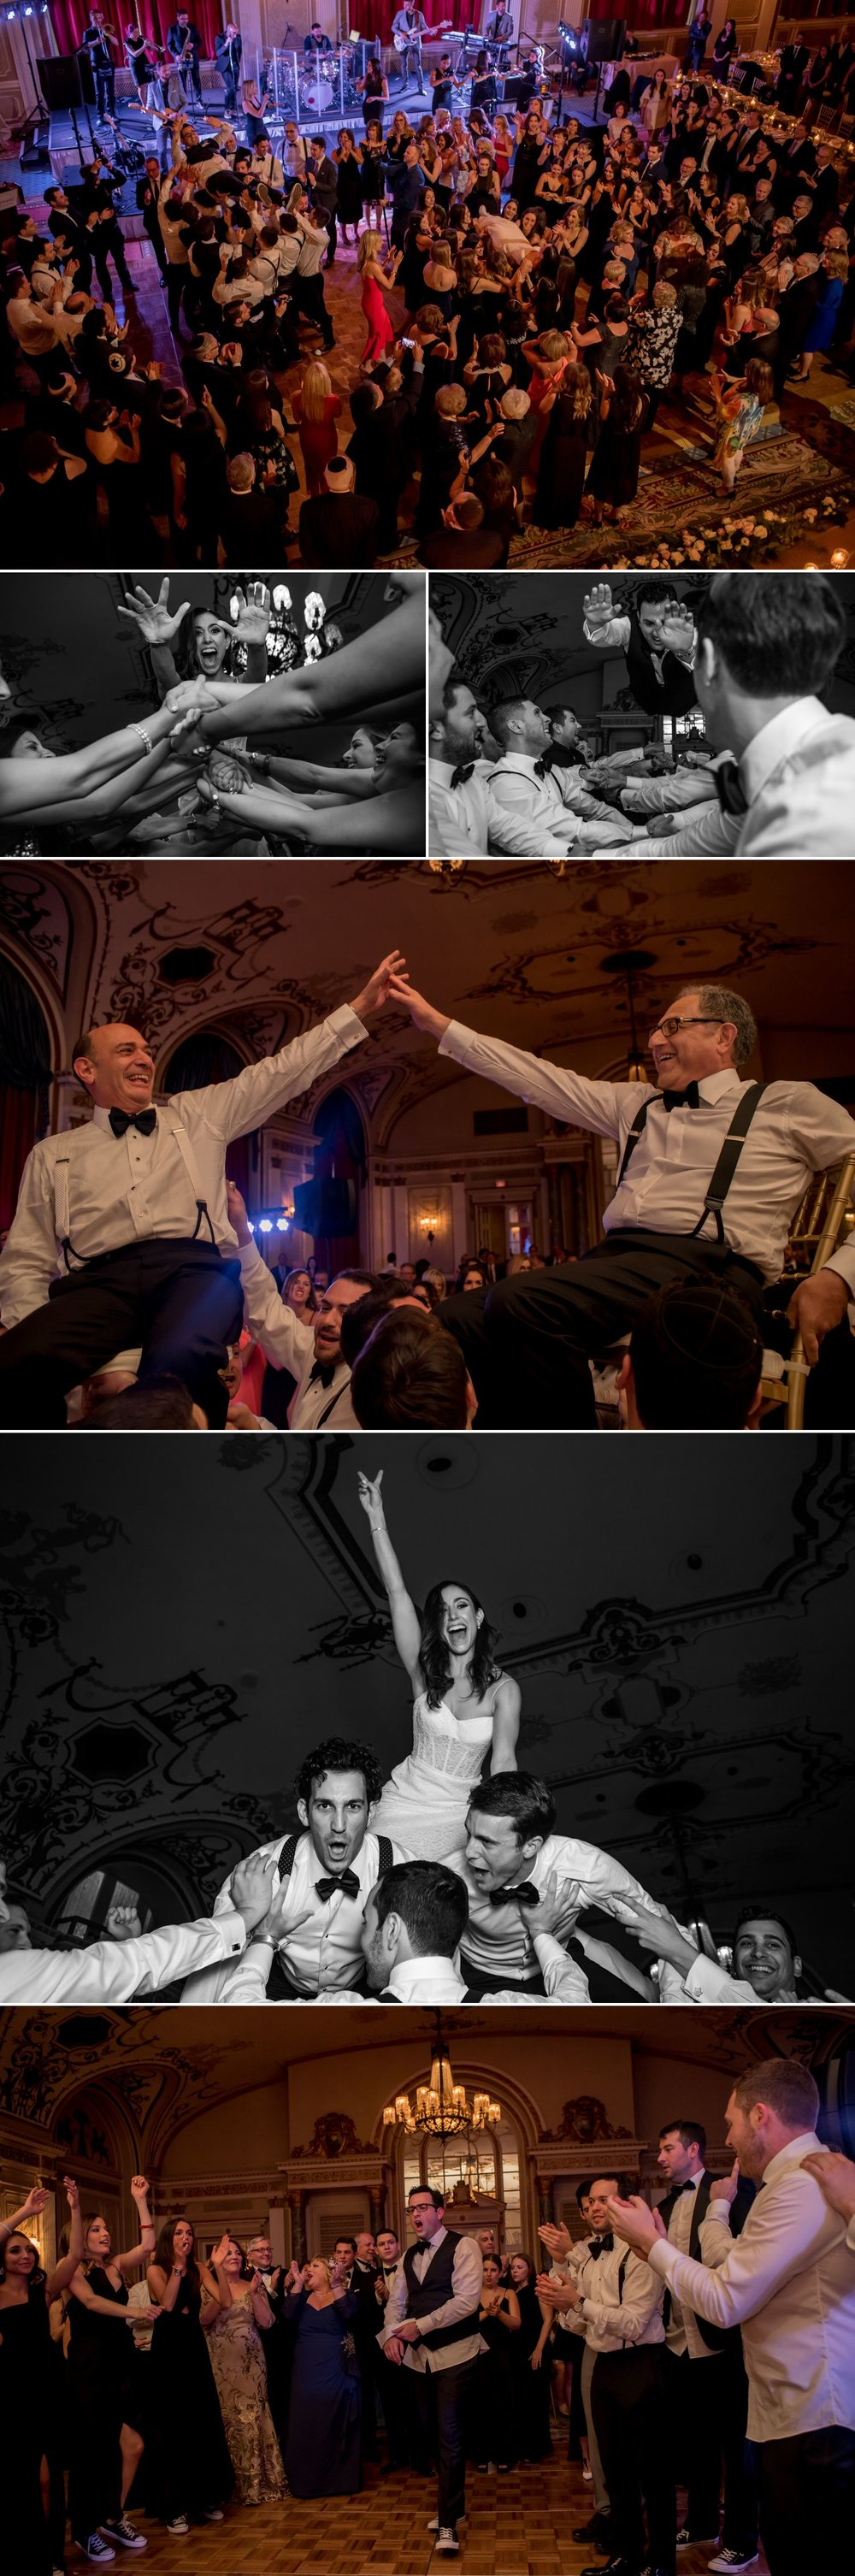 candid moments during horah dance at a jewish wedding in the chateau laurier ballroom in ottawa ontario